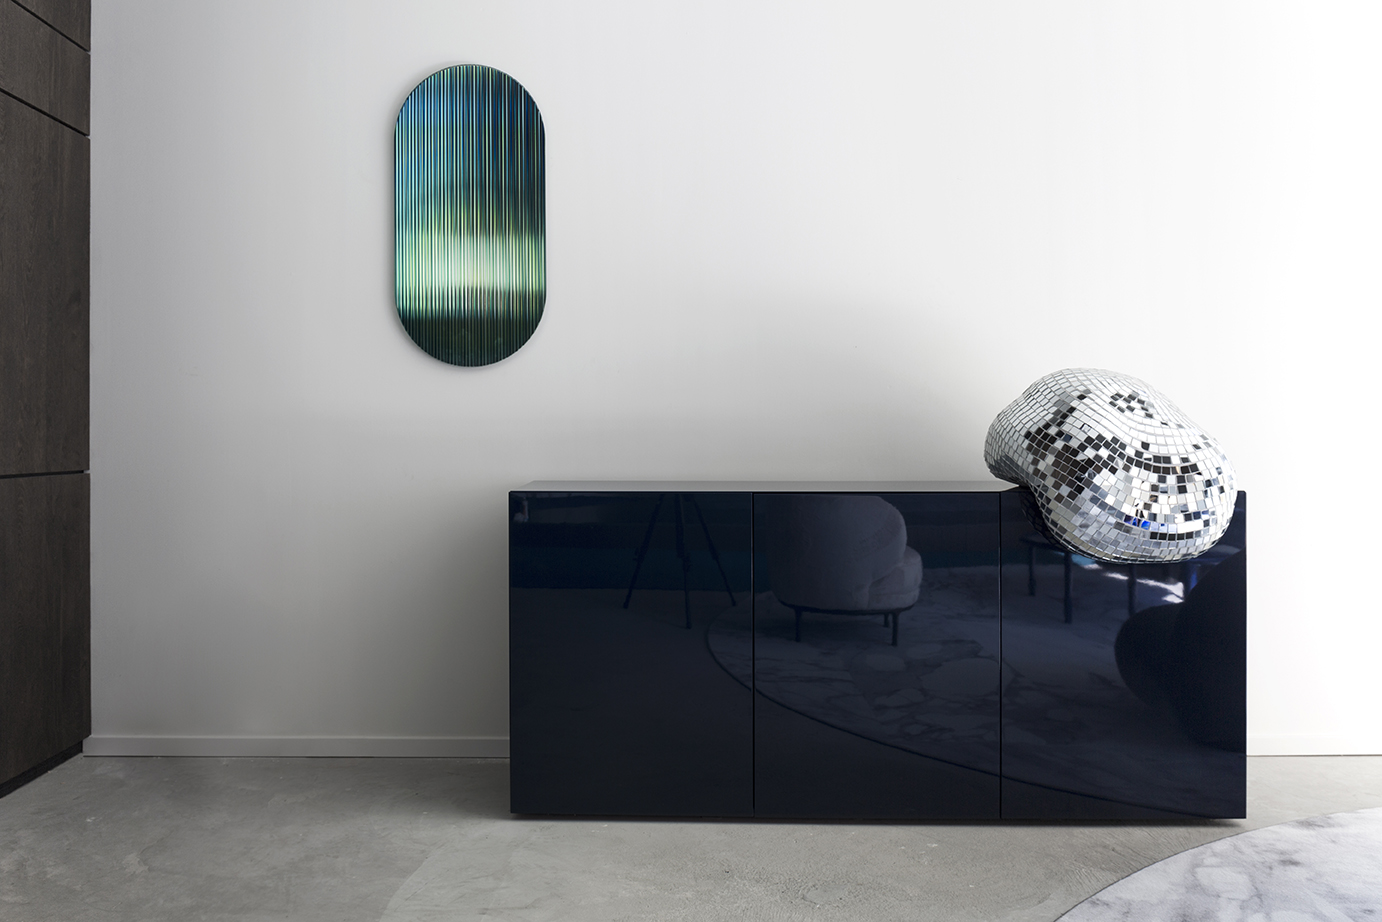 Colour Shift Panel - Green - displayed with Elle Decoration NL during Dutch Design Week 2018